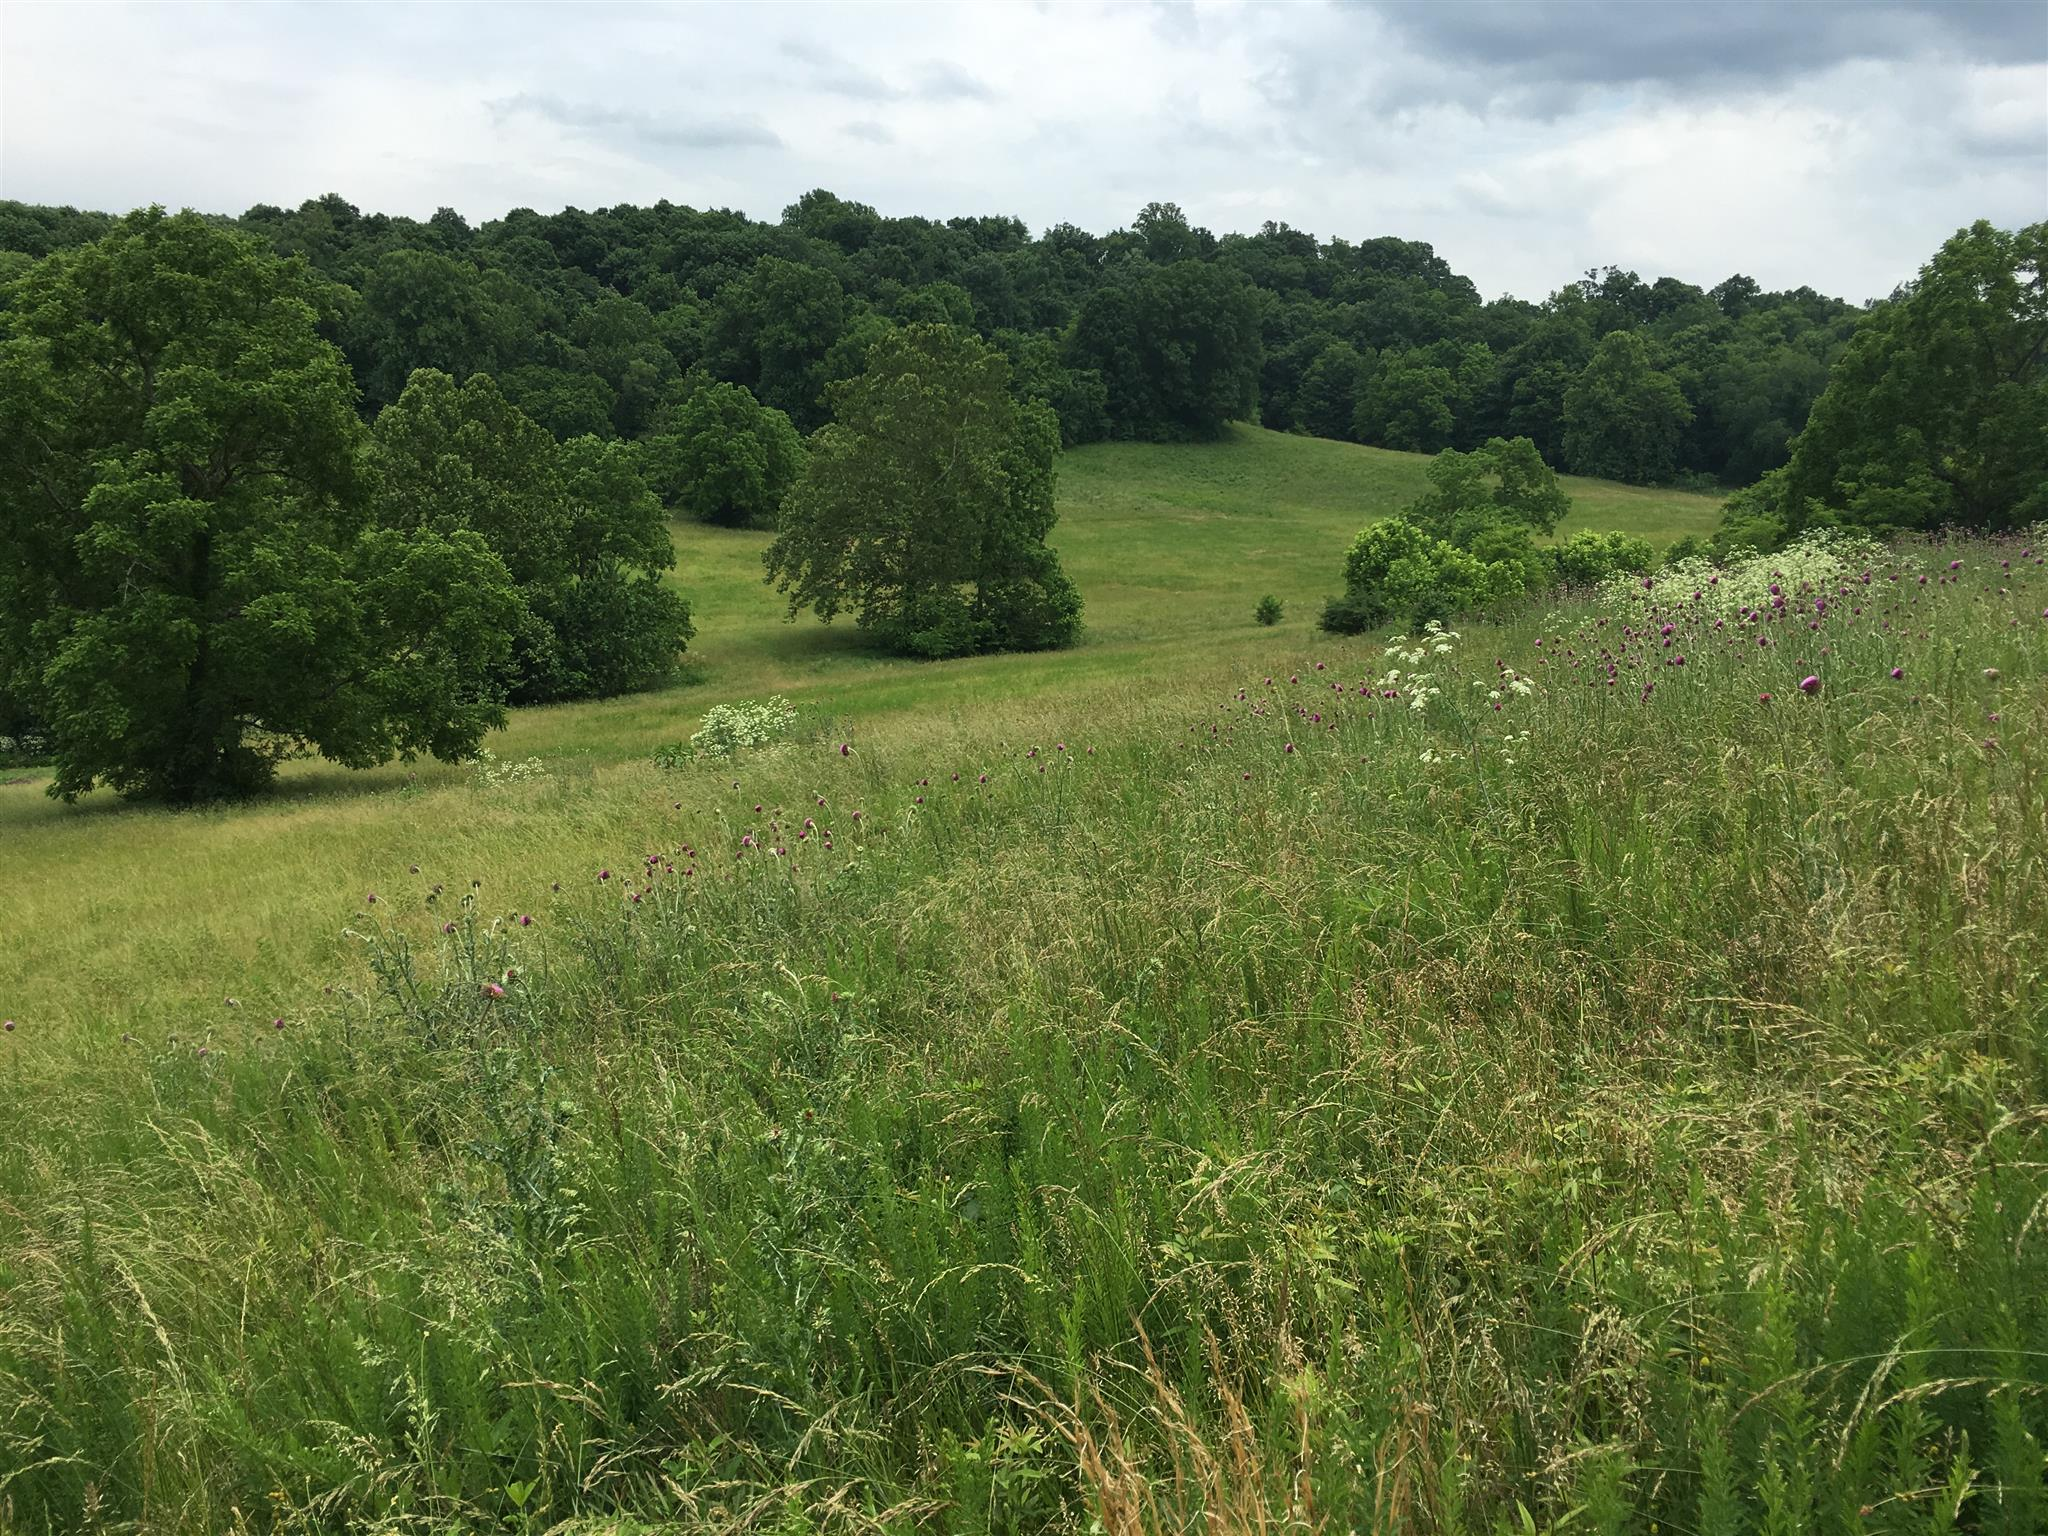 3400 Floyd Rd Parcel 1, Franklin, TN 37064 - Franklin, TN real estate listing